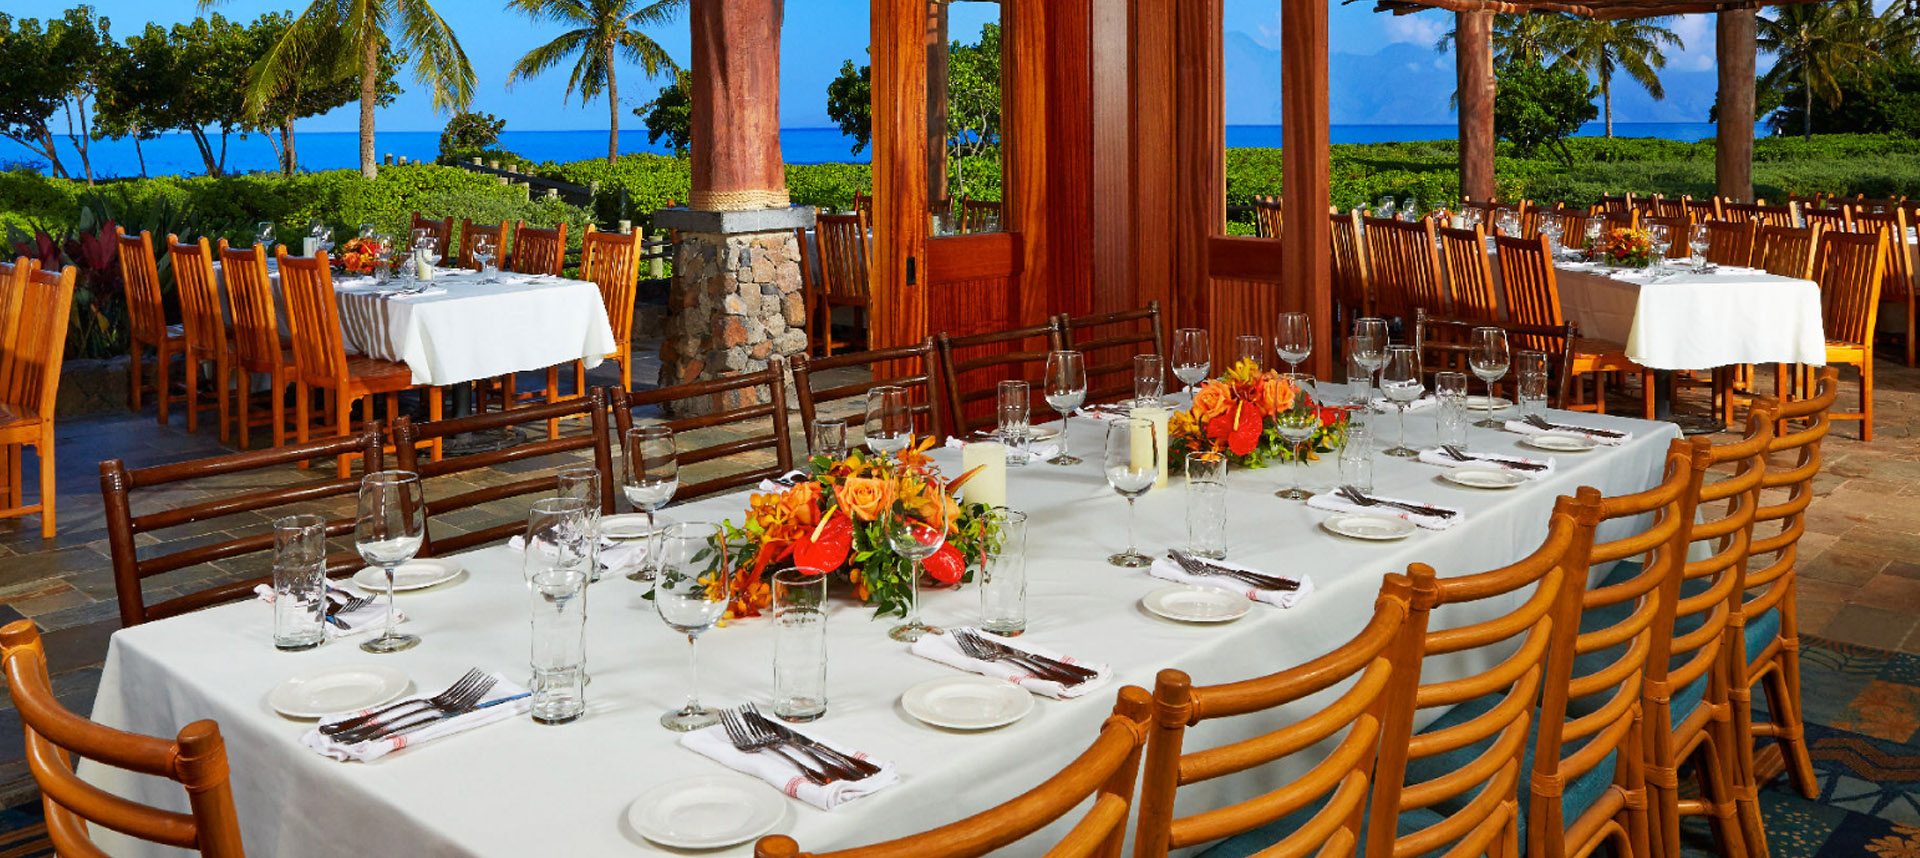 Three large dining tables set with and ocean view